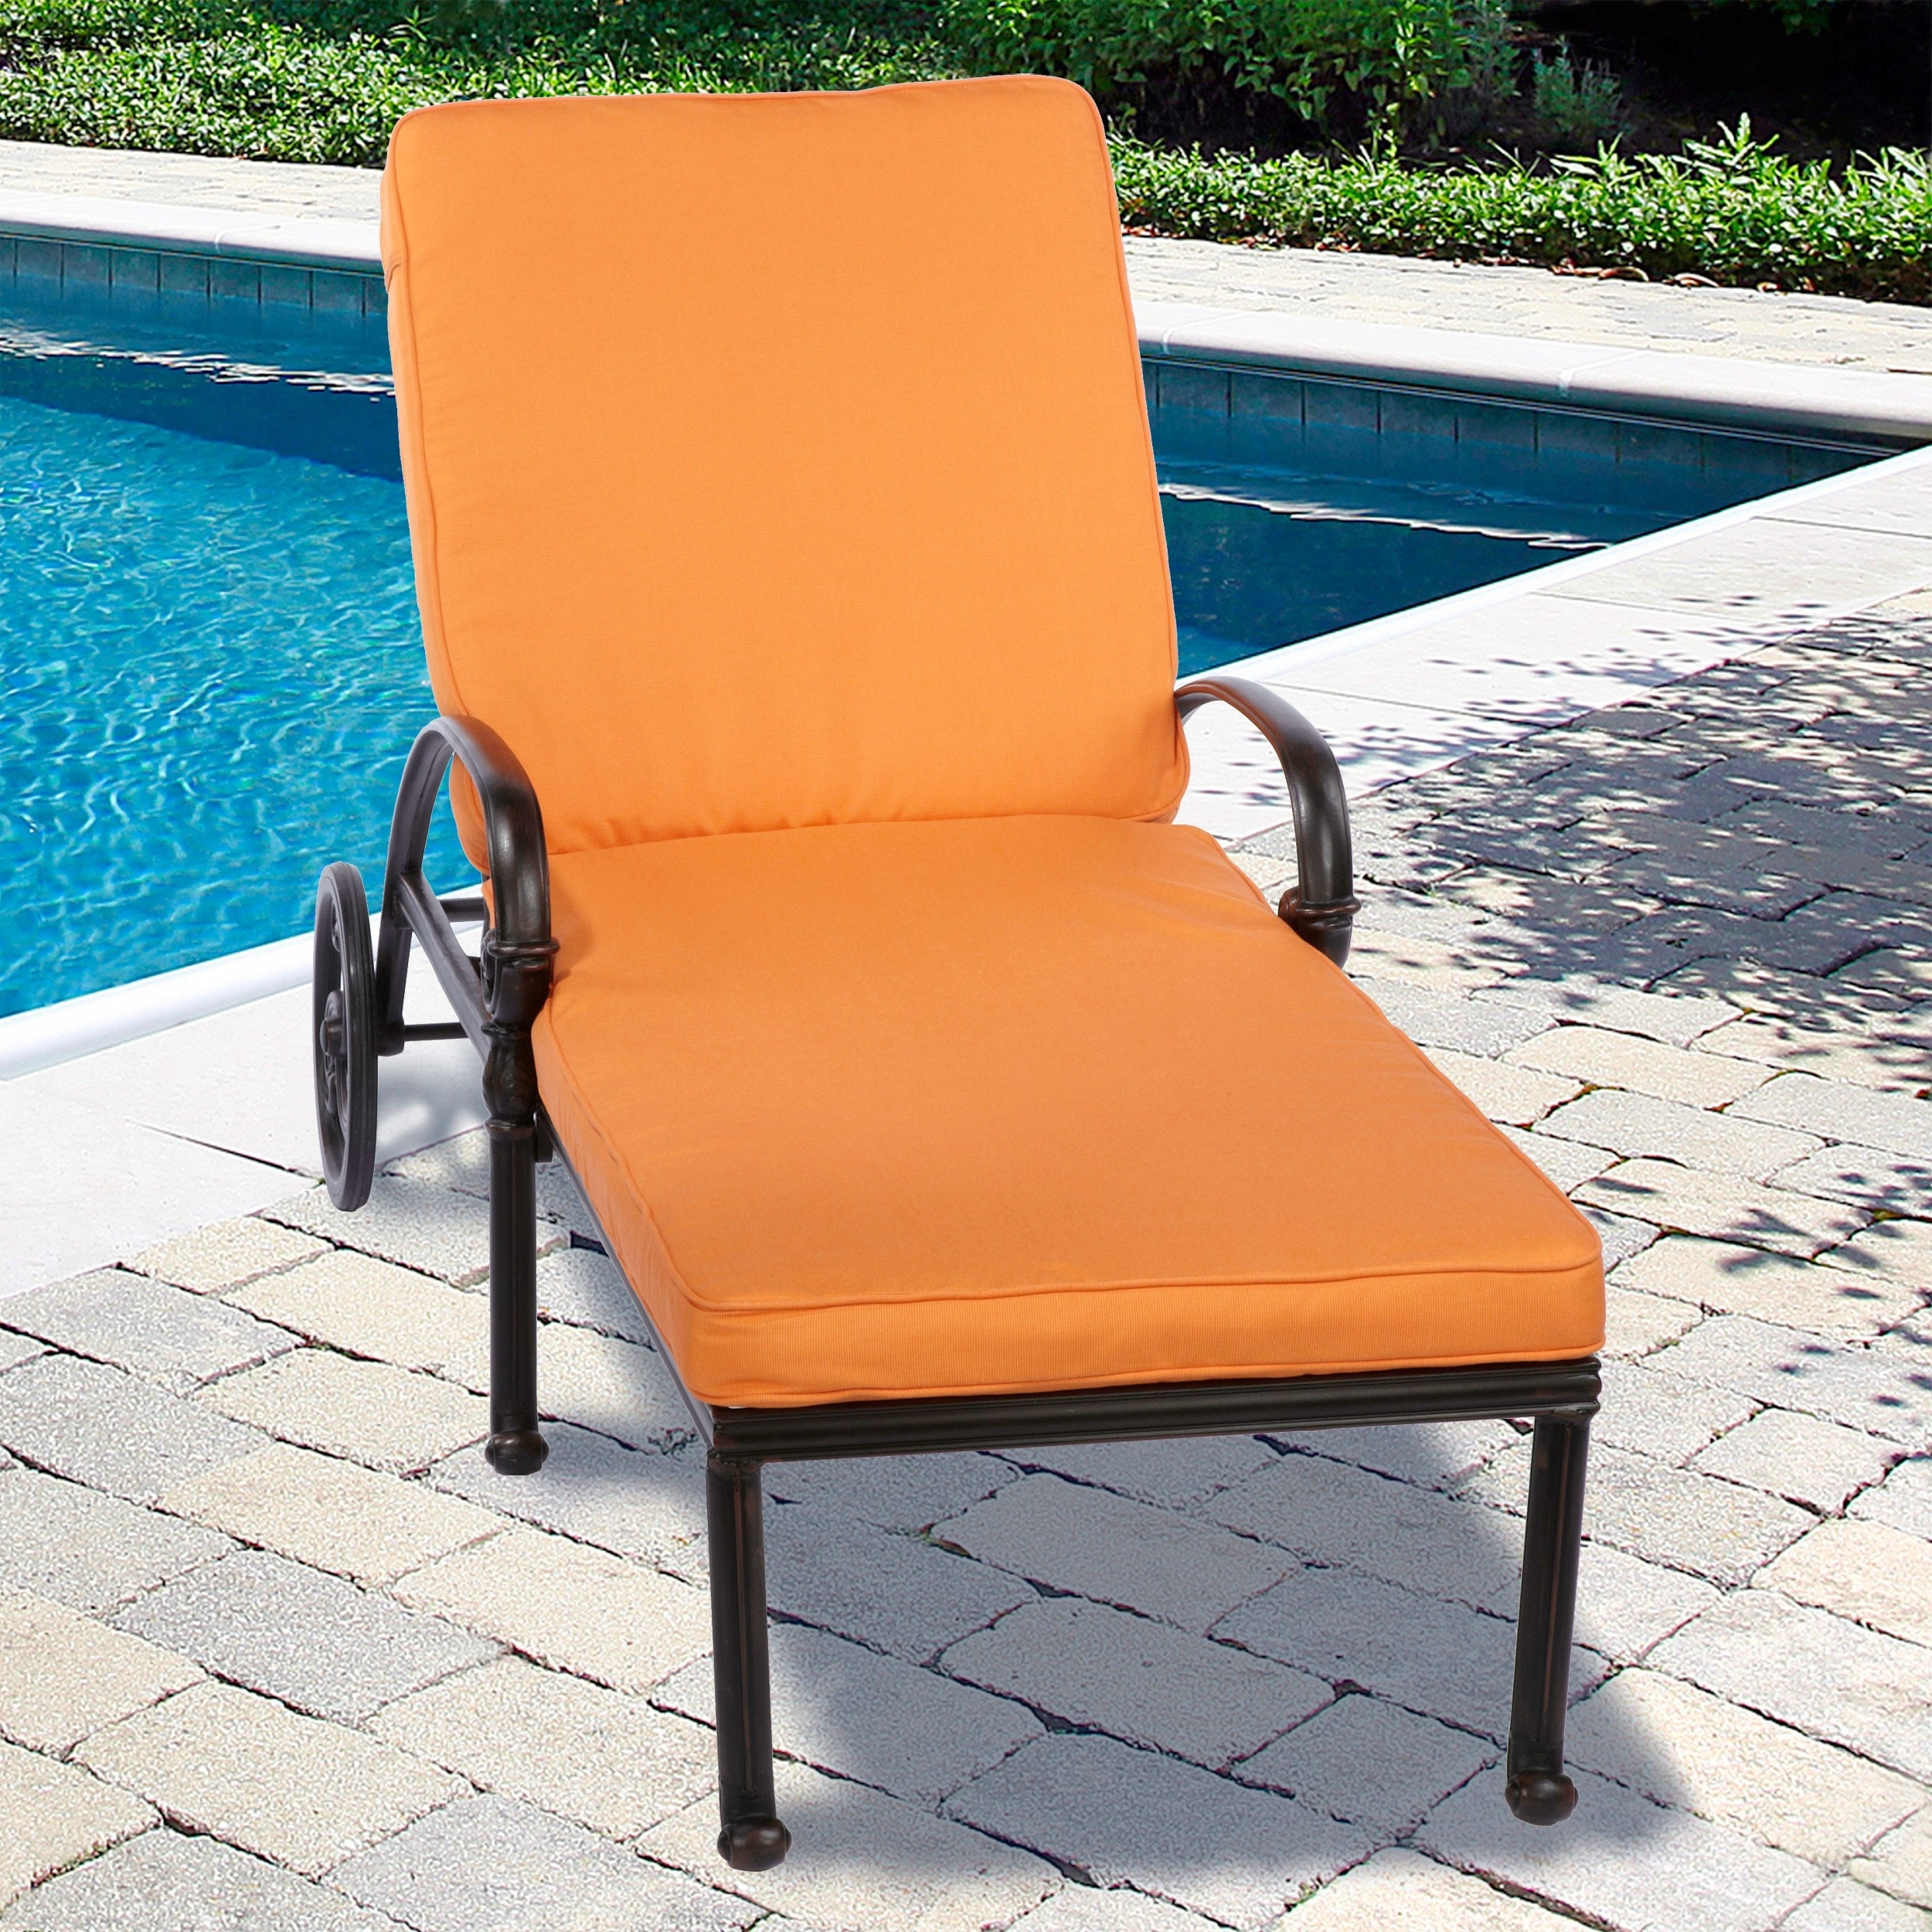 Outdoor Cushions For Chaise Lounge Chairs For Trendy Convertible Chair : Outdoor Furniture Cushions Clearance Outside (View 7 of 15)